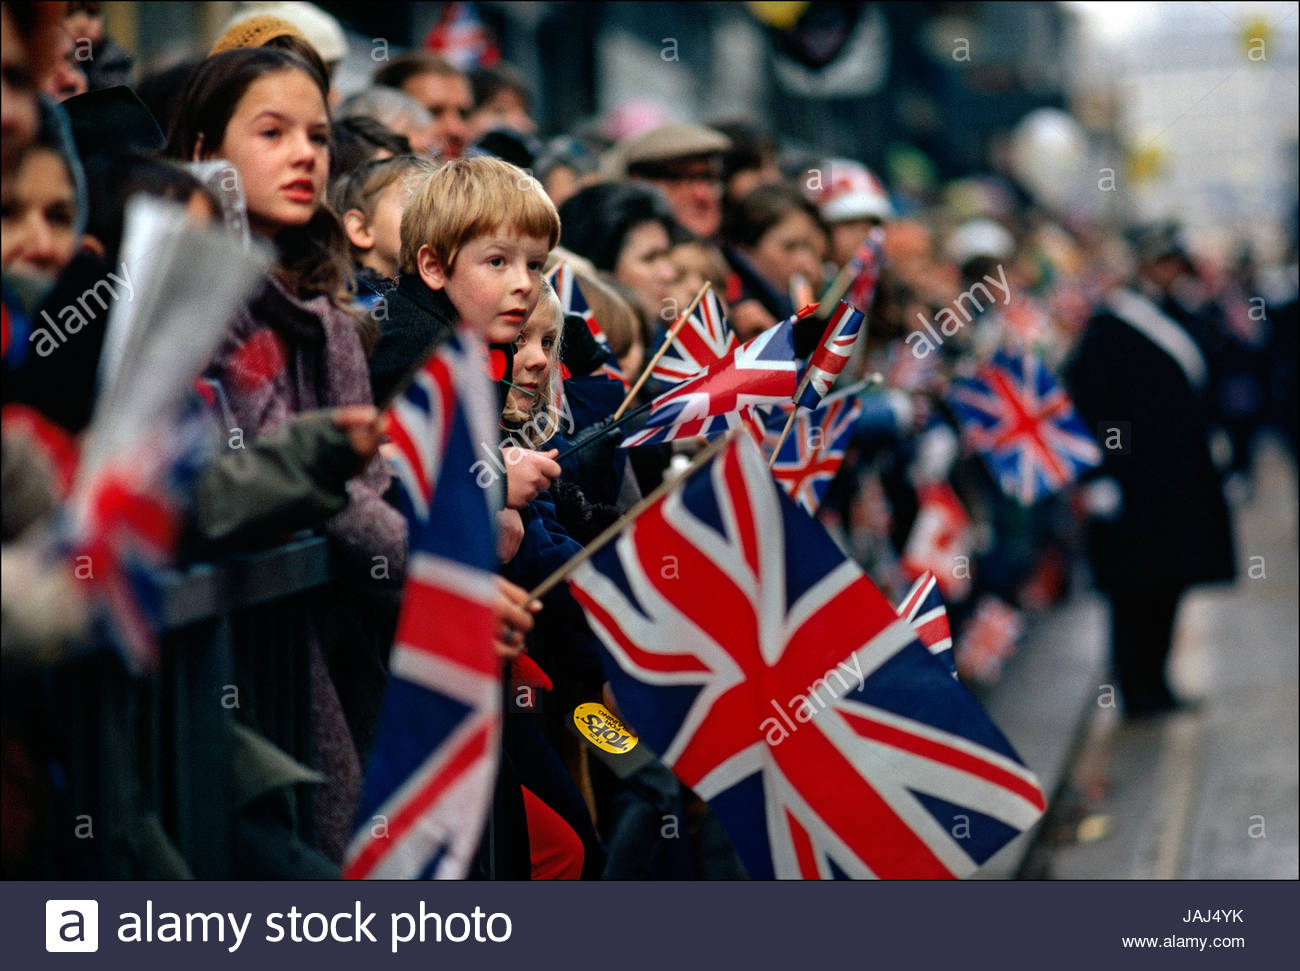 British Children Hold The National Flag Of The United Kingdom The